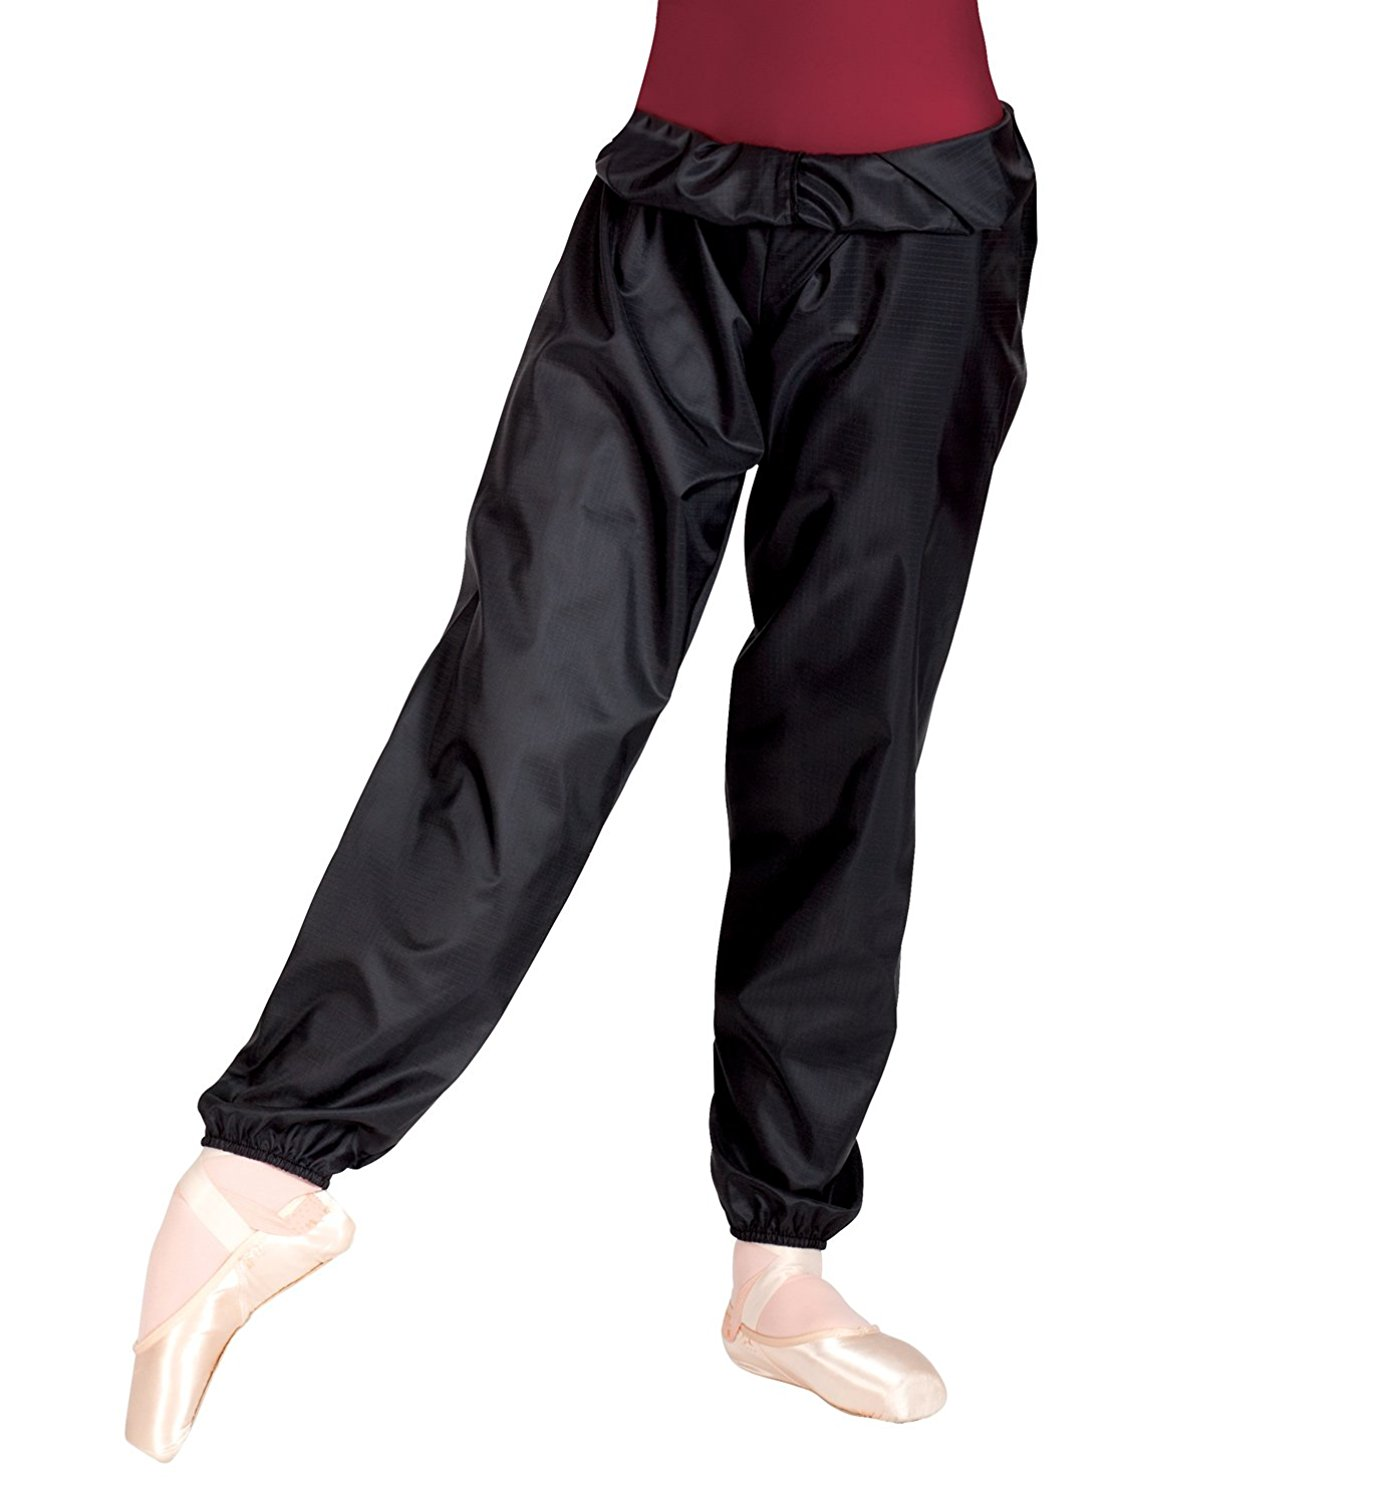 dance pants body wrappers ripstop pants AJCIHSJ